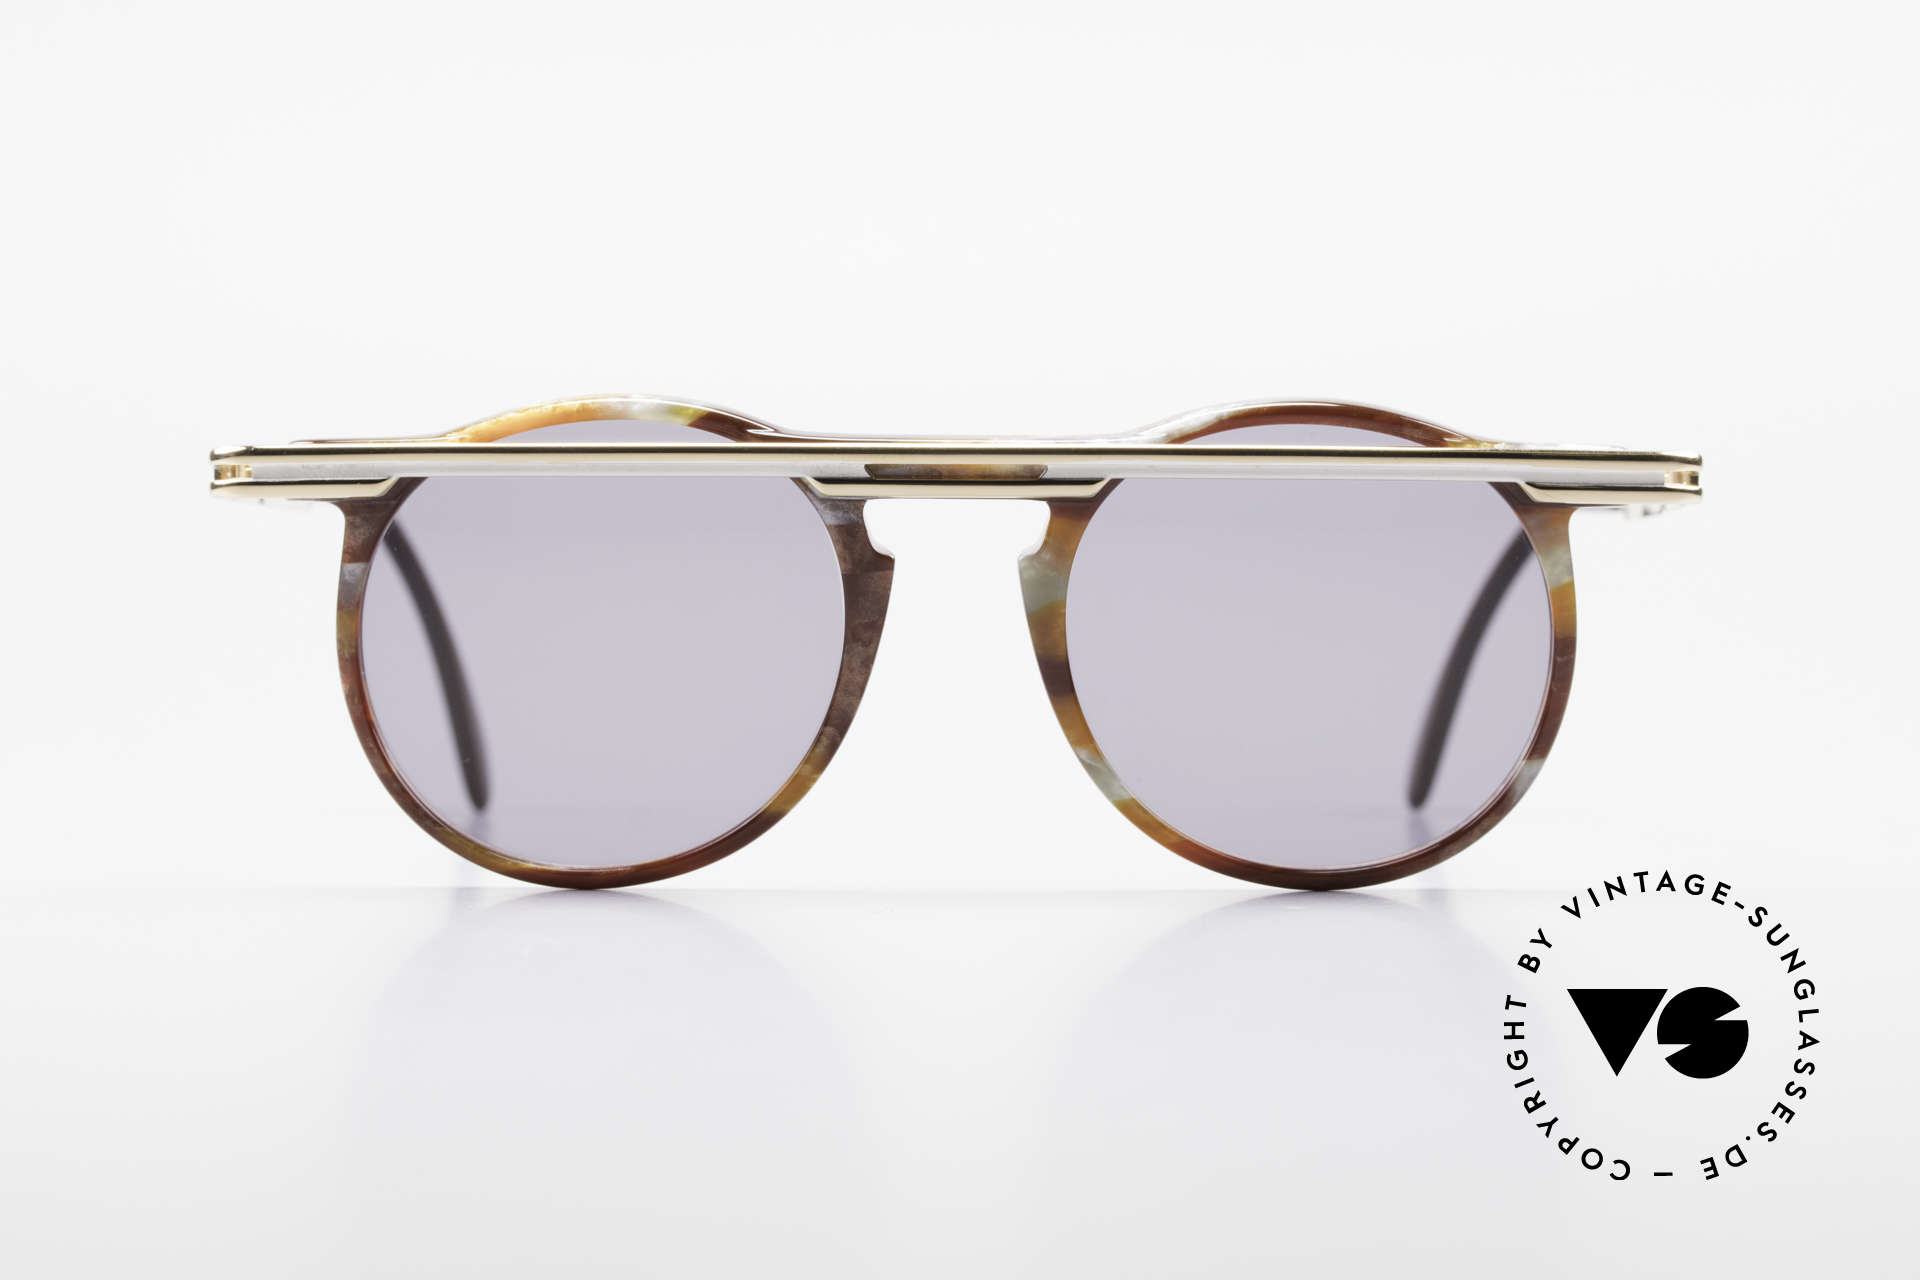 Cazal 648 Cari Zalloni Round Shades 90s, worn by the designer - Cari Zalloni (see the booklet), Made for Men and Women